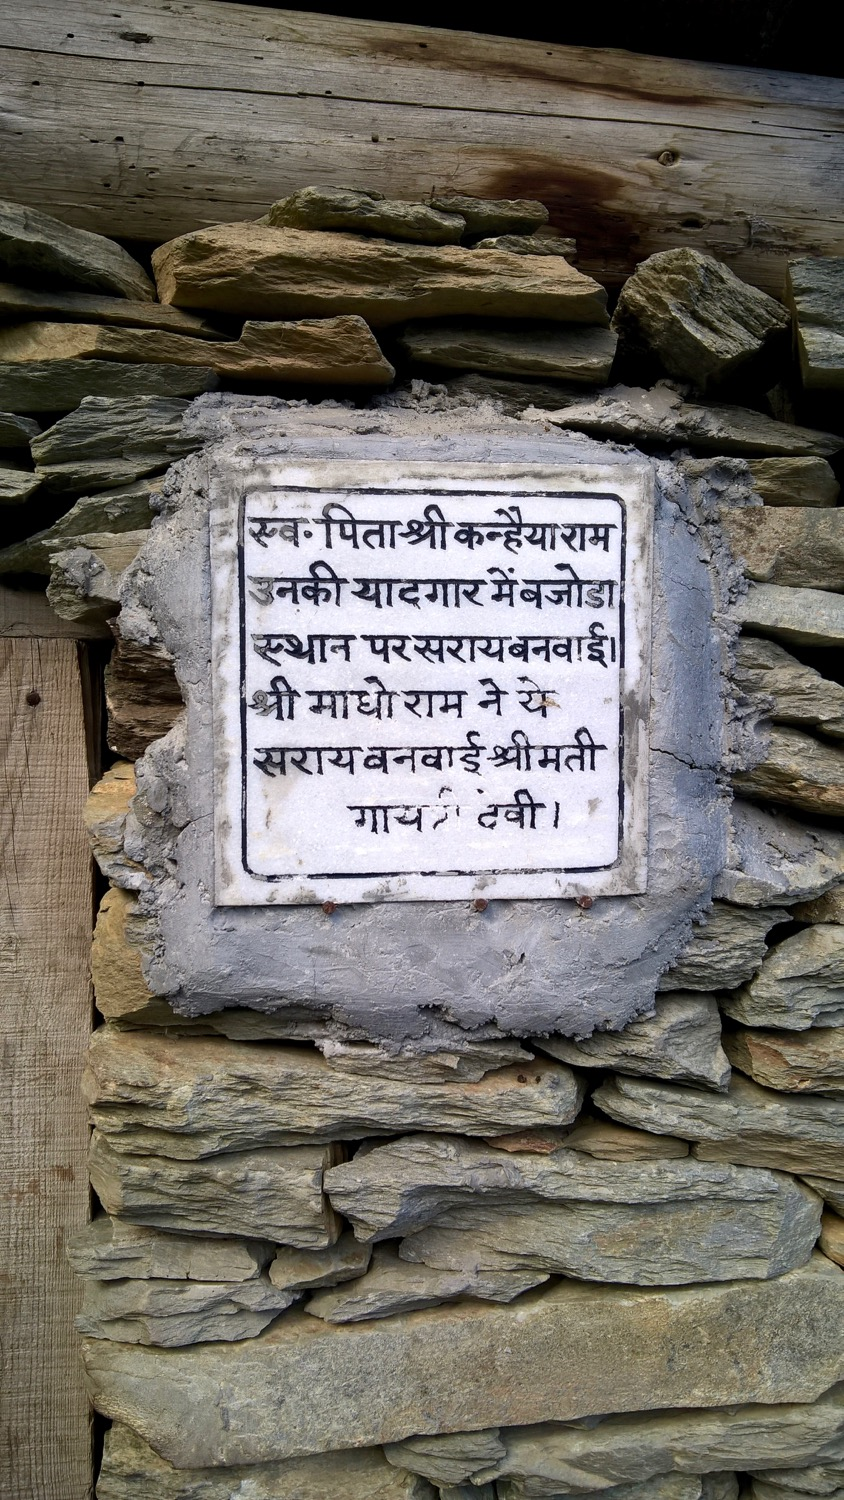 The 'unknown' sarai at Bajoda. Contracted by Gayatri Devi in sweet memory of her father Kanhaiya Ram.